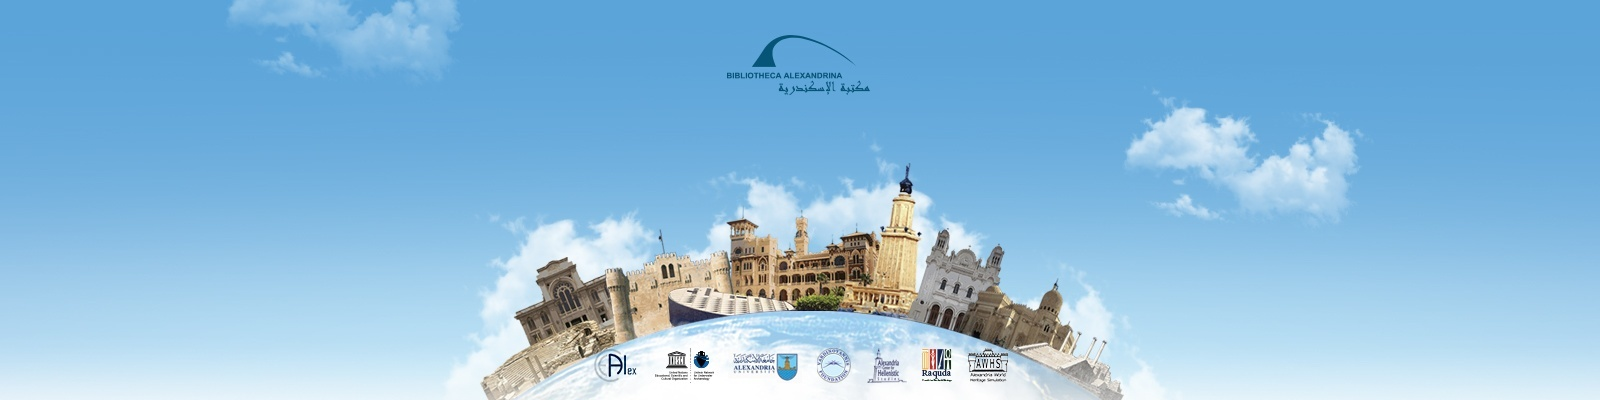 "The ""Alexandria World Heritage Simulation"""